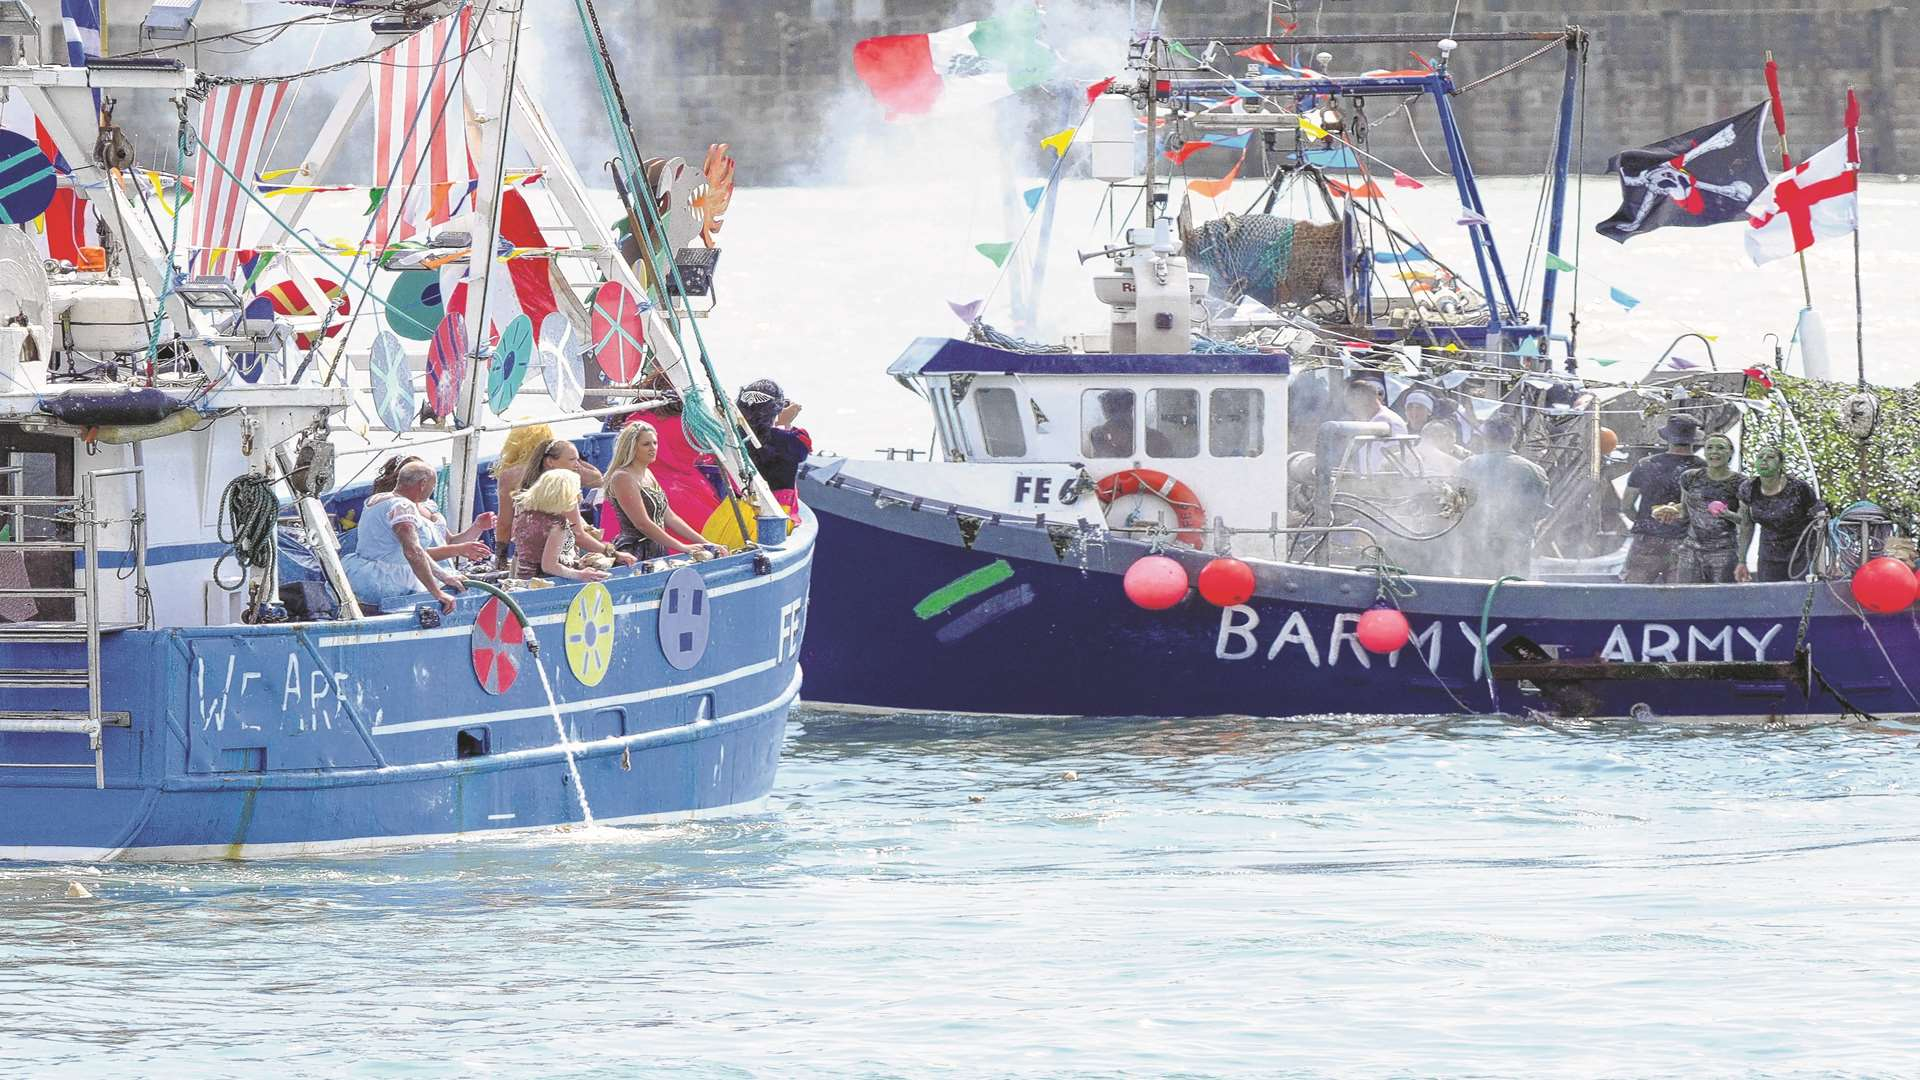 Last year's winning boat Barmy Army in action. Picture: Wayne McCabe/KM Group